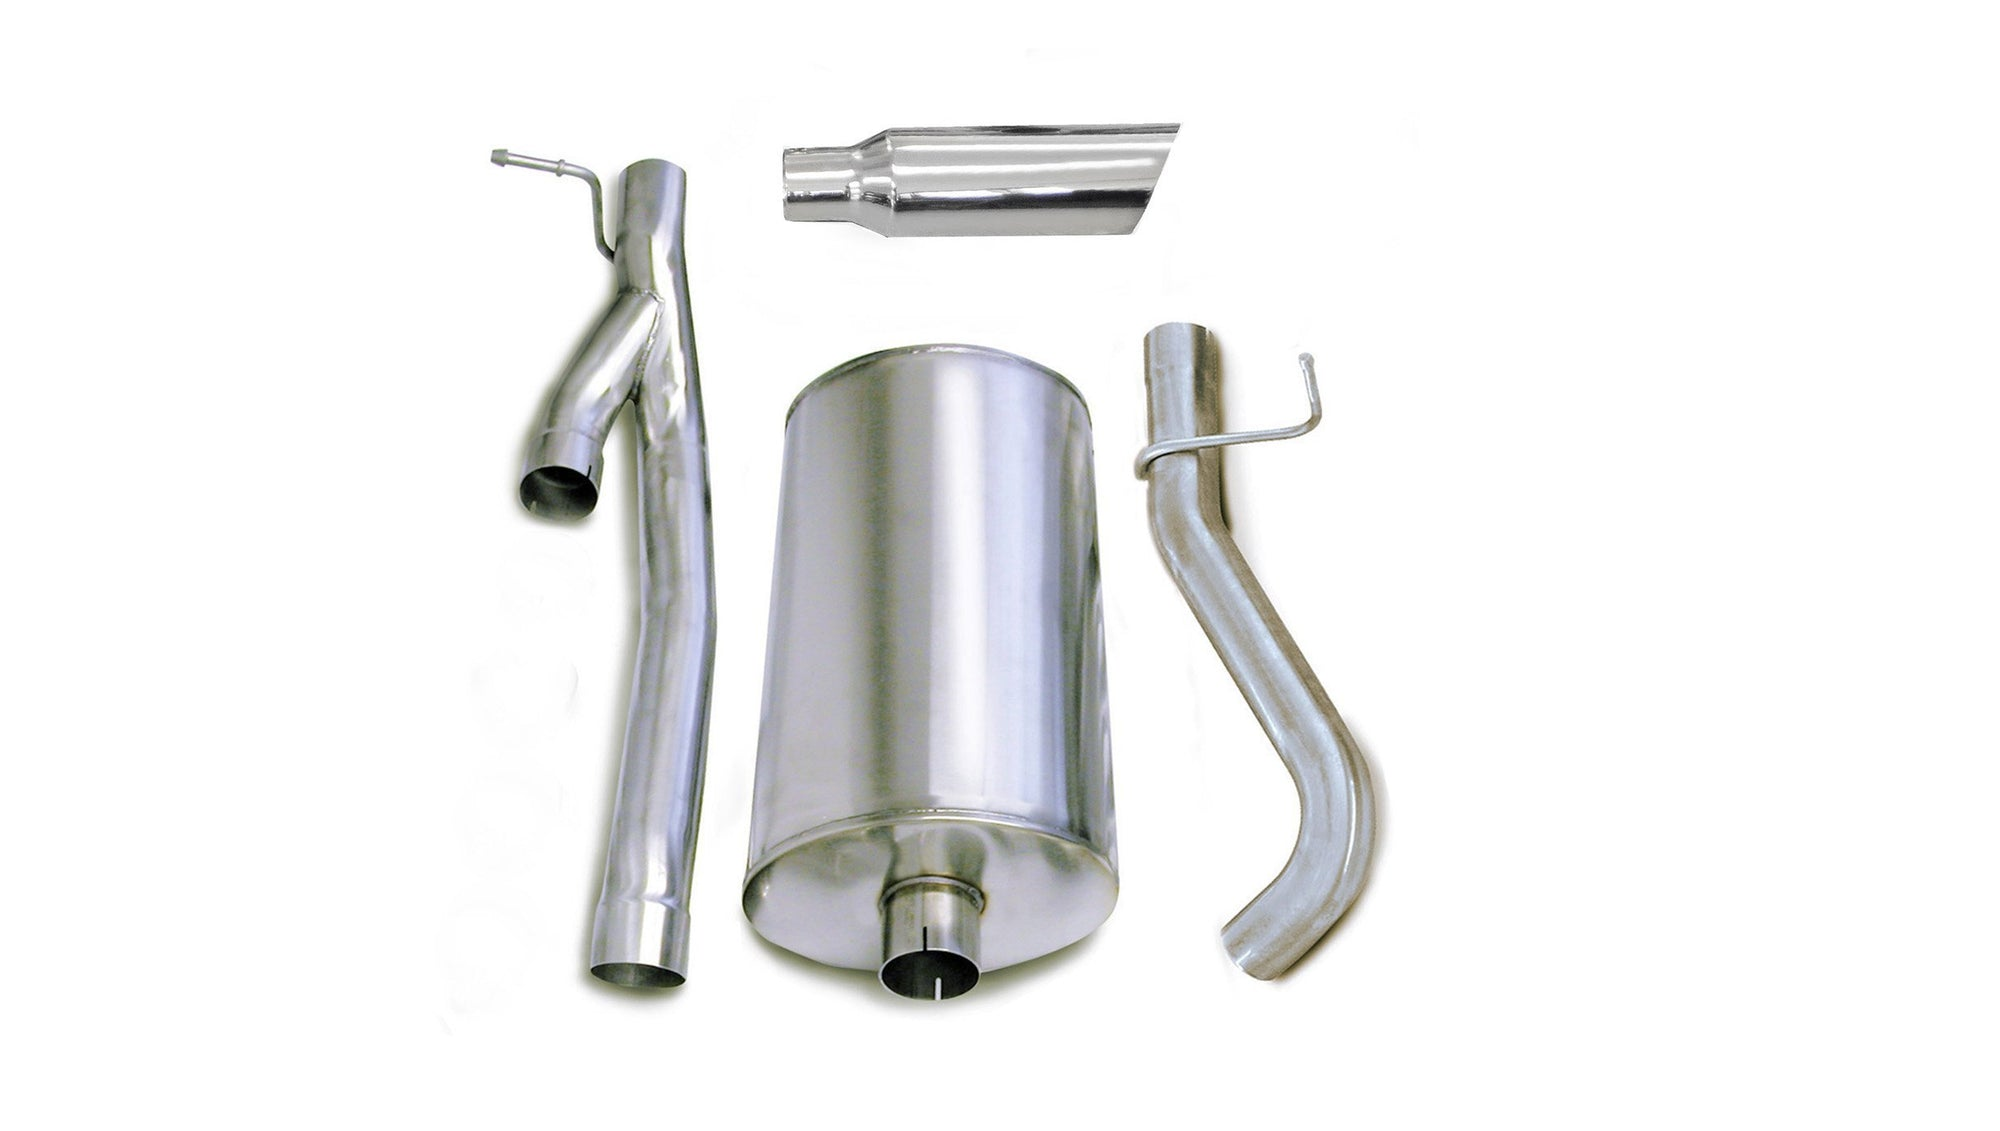 "dB Cat-Back Exhaust Polished / Sport / Single Side - Single 4in 2003-2006 Chevrolet Silverado, GMC Sierra, 2500, 6.0L V8, 3.0"" Single Side Exit Catback Exhaust System with 4.0"" Tip (24292) Sport Sound Level"